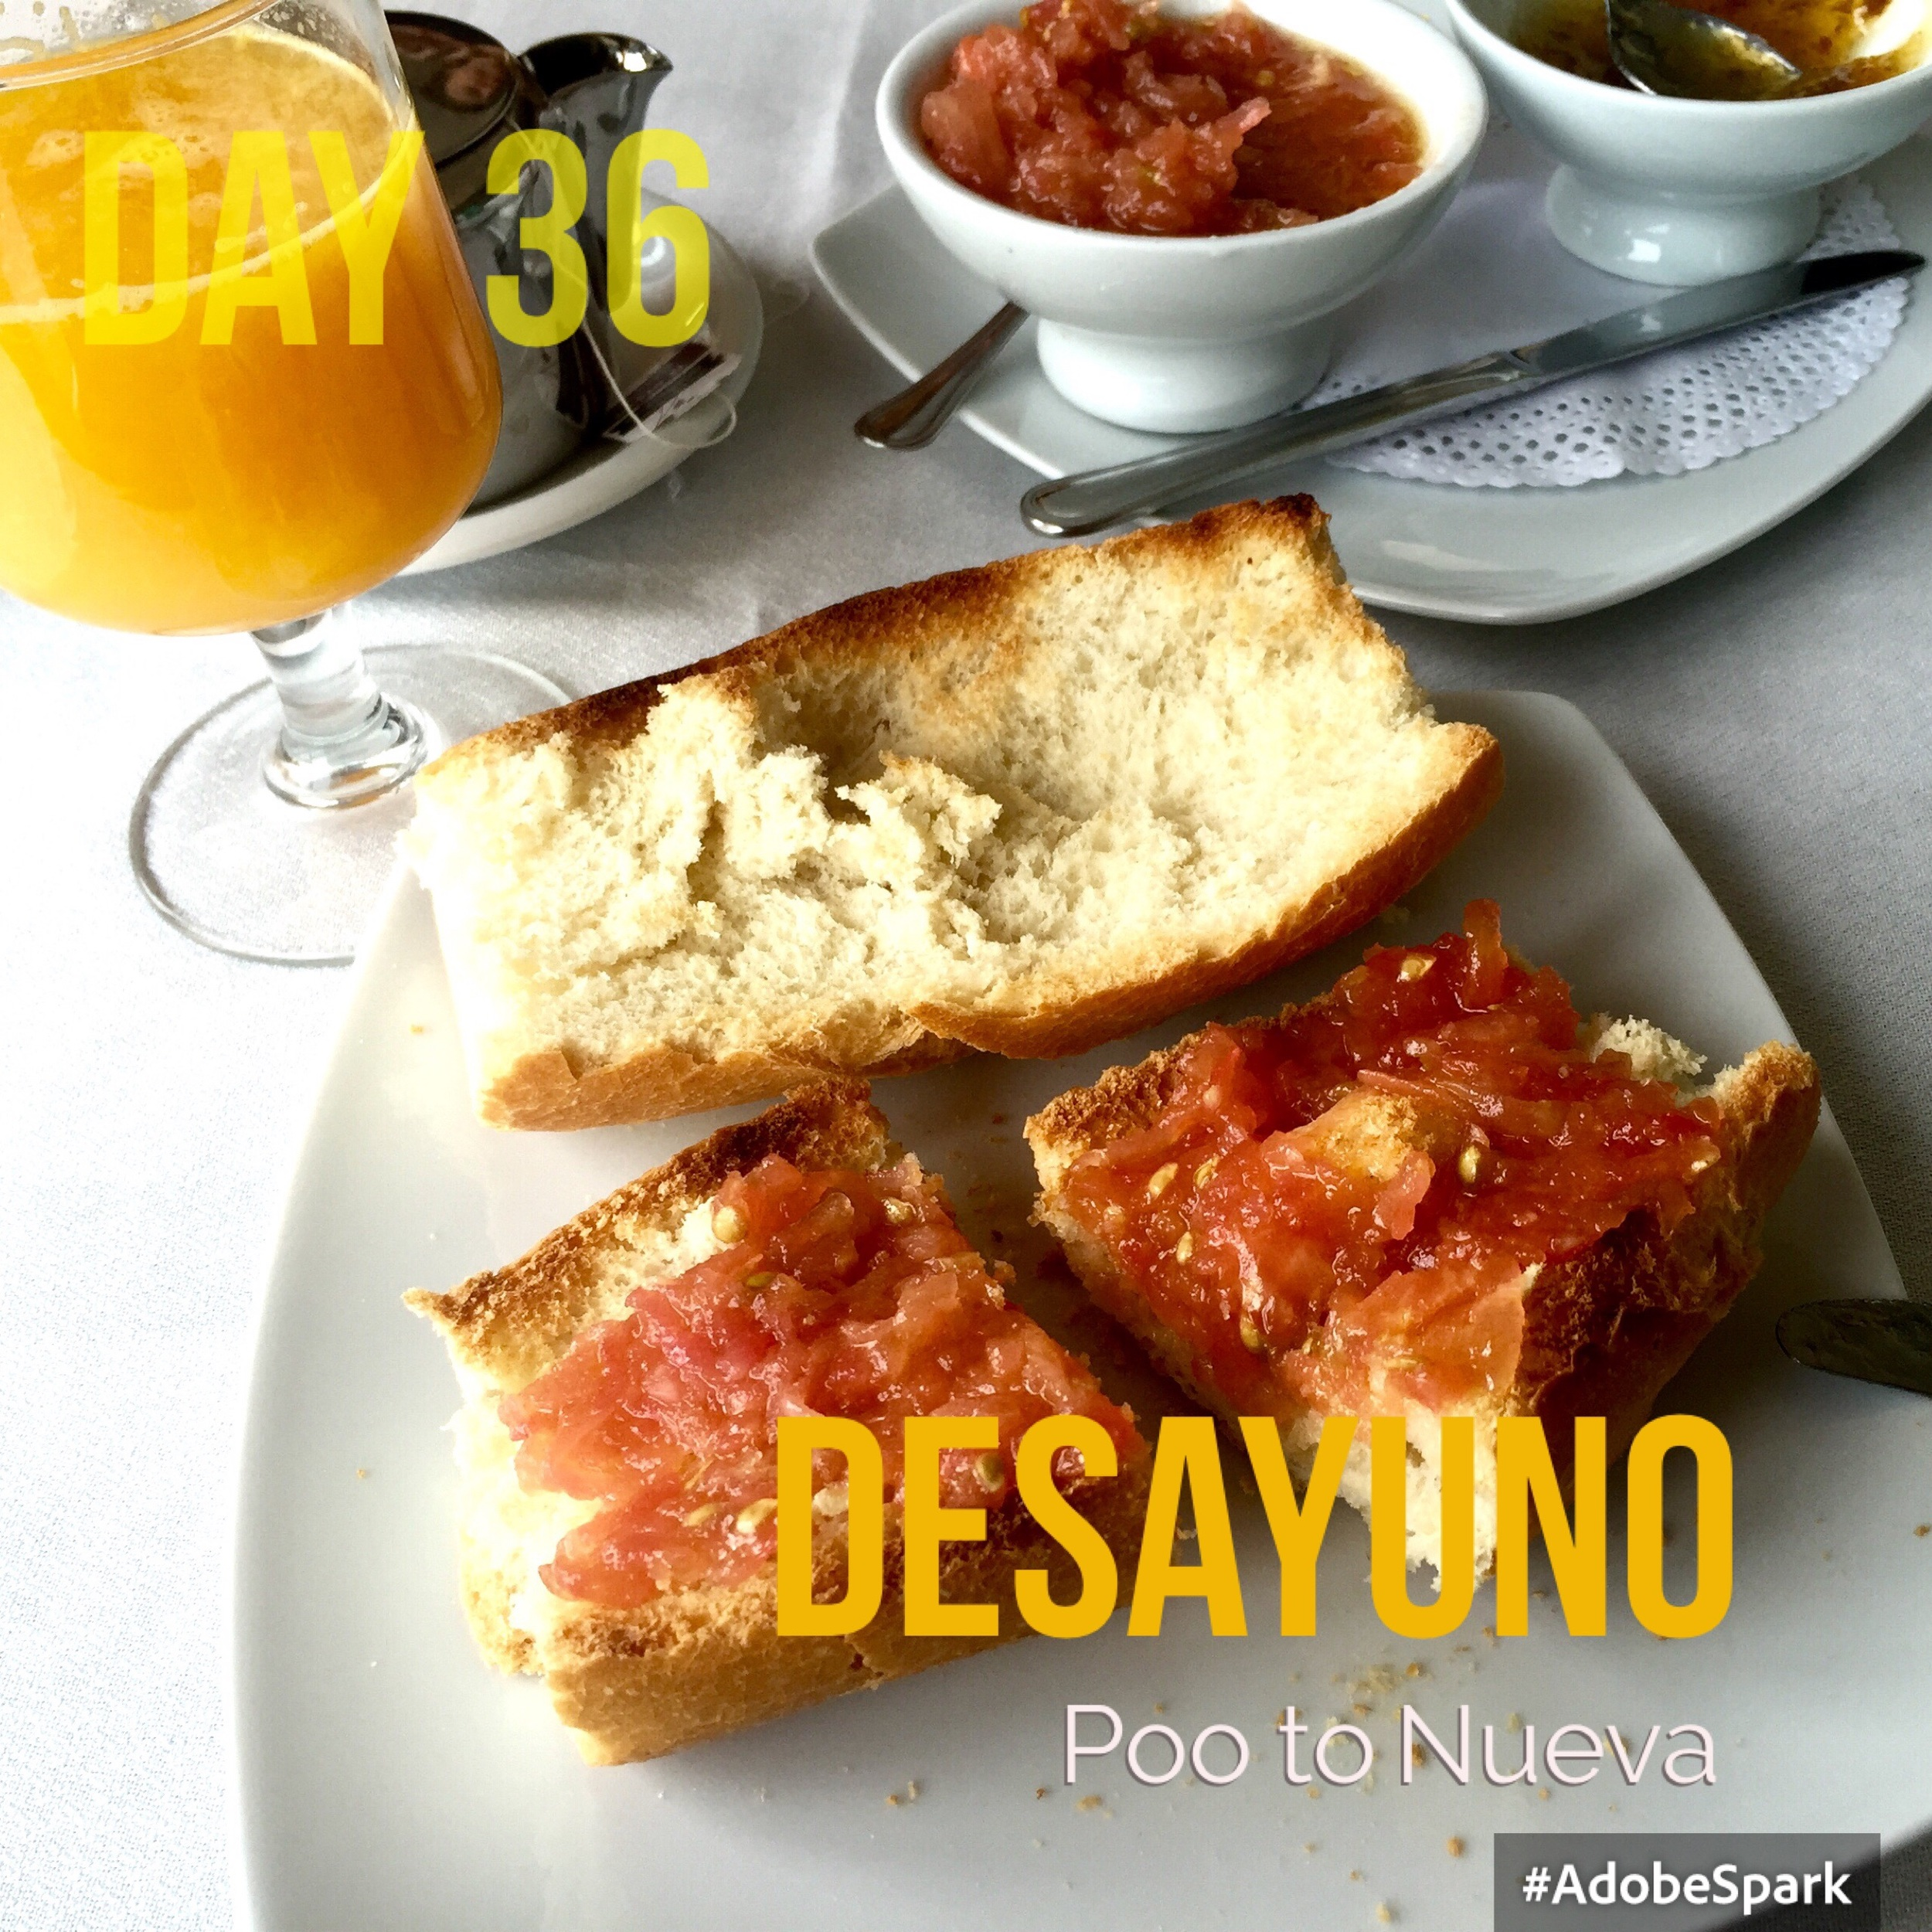 Tomato paste on toast is a favourite here